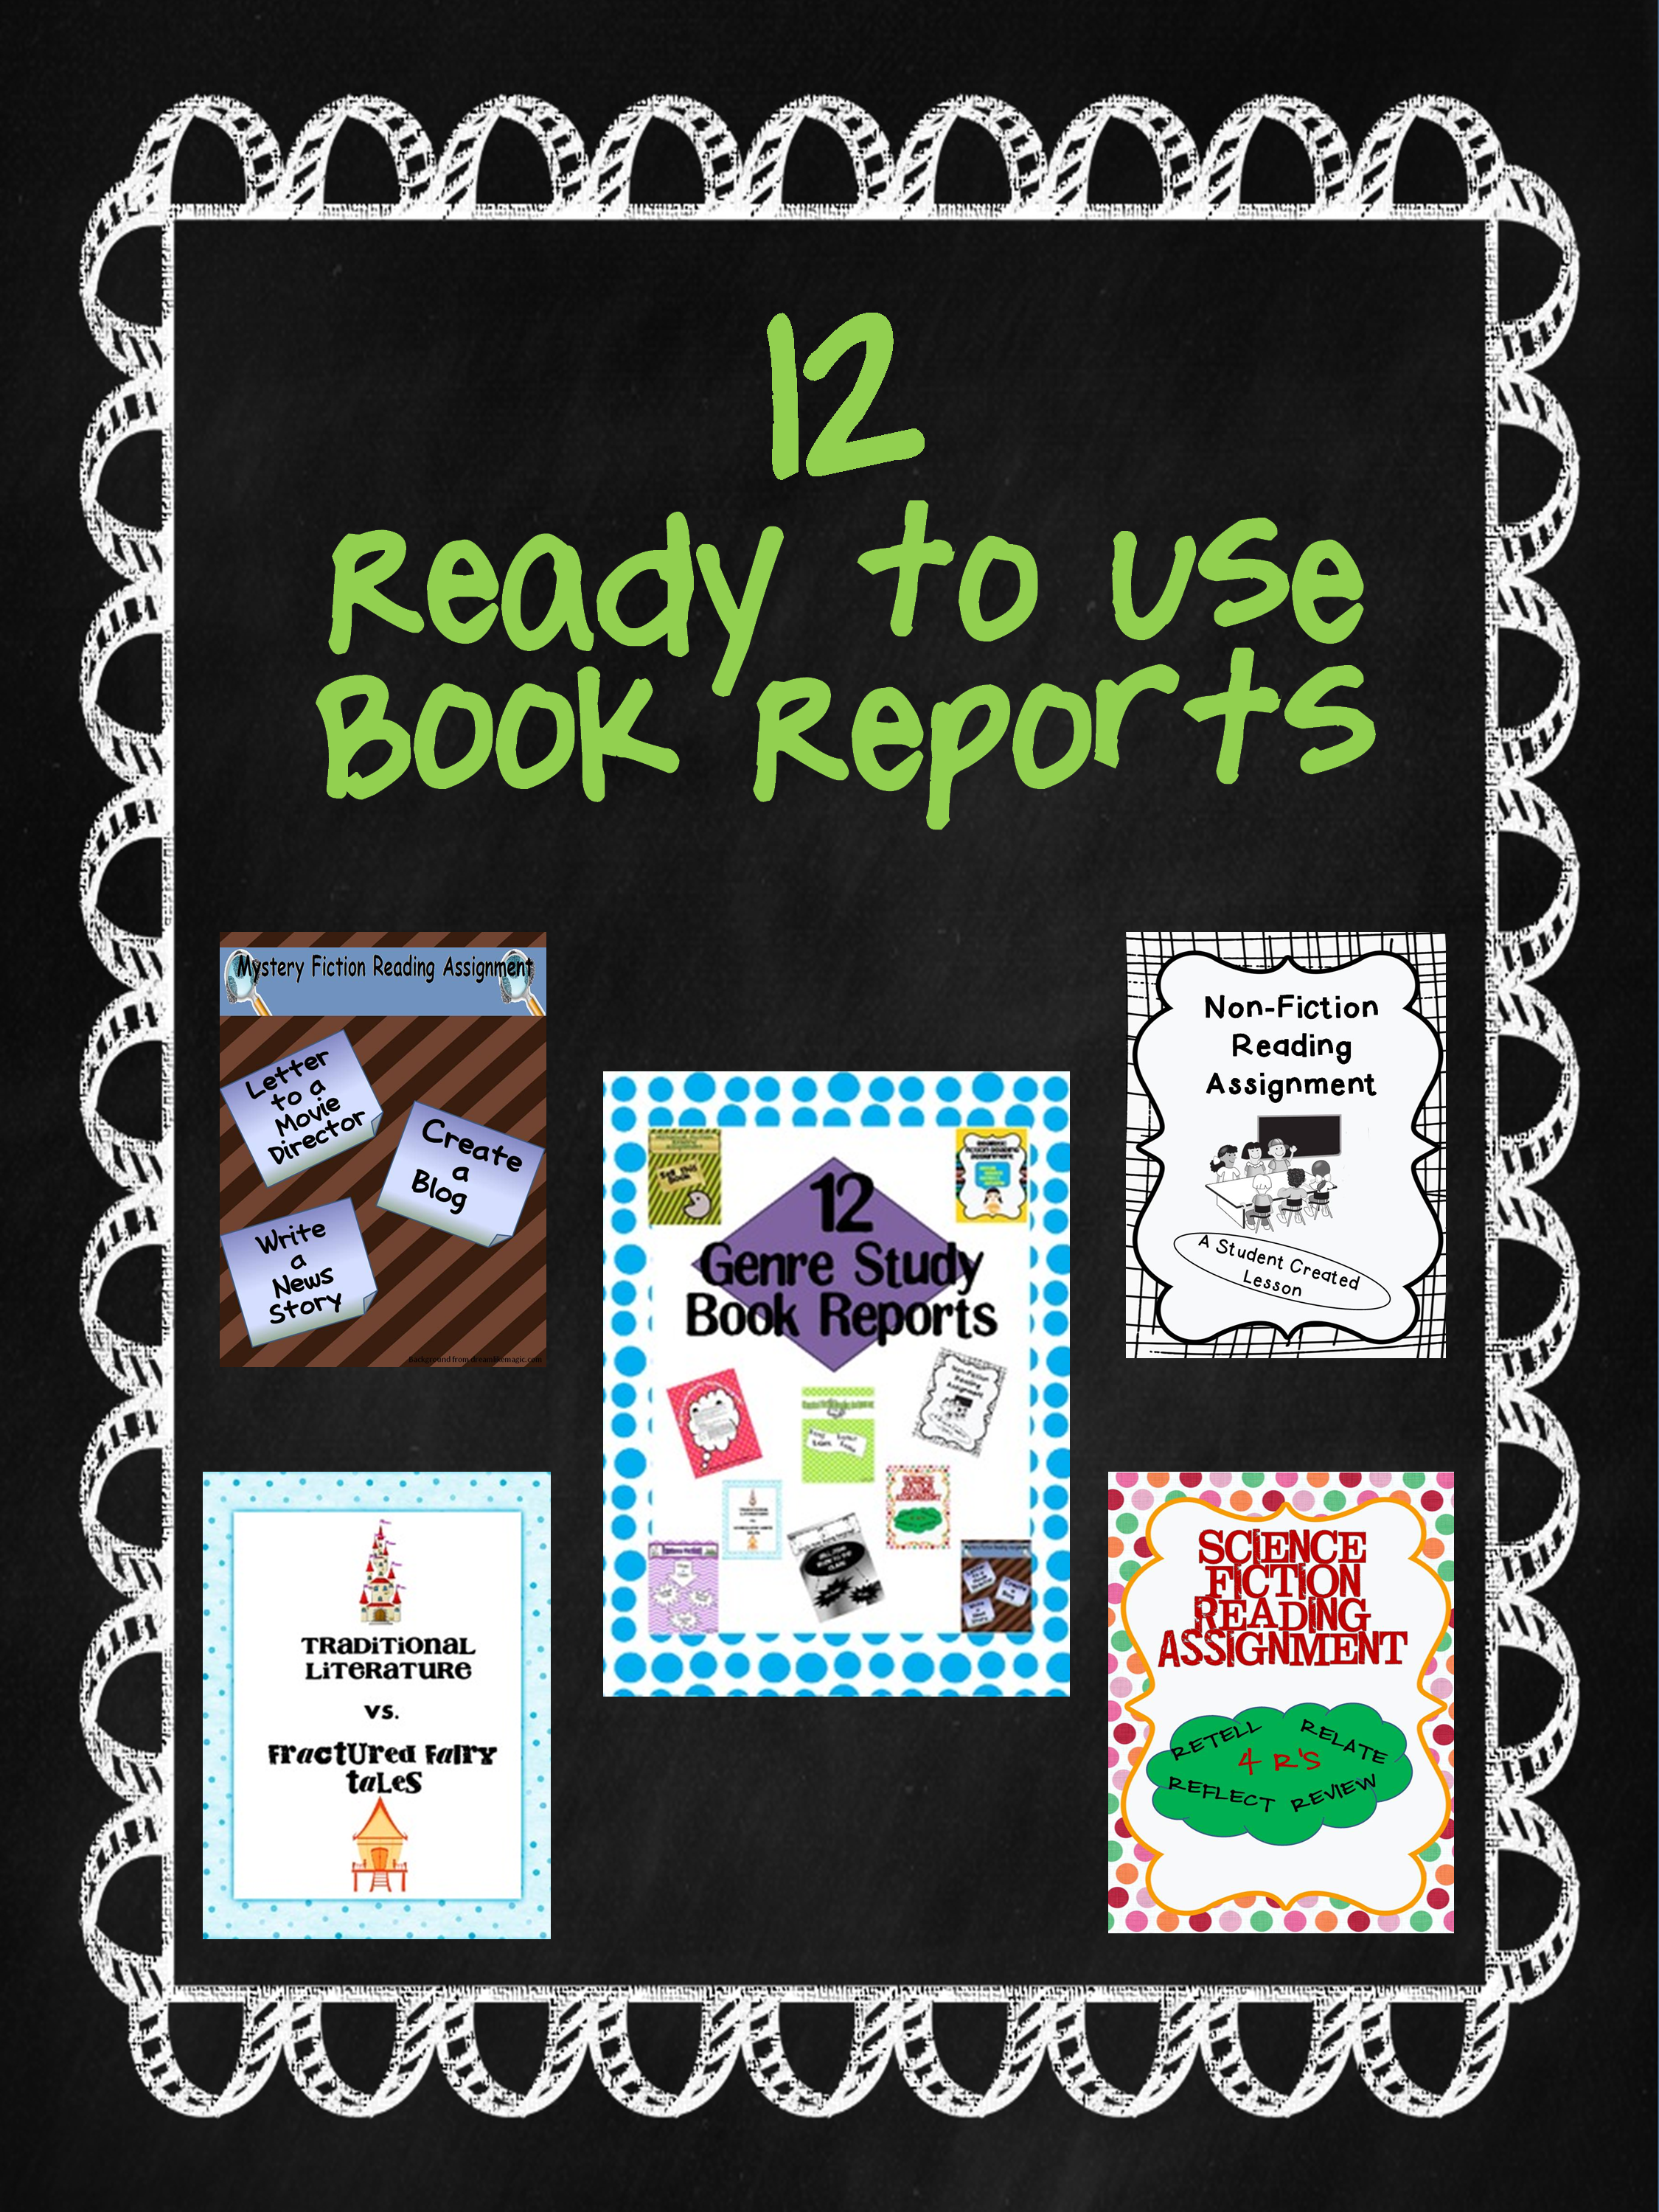 creative book reports pinterest February writing prompts creative writing topics and journal ideas  blog hoppin pumpkin book reports  2nd grade biography project examples generated on.